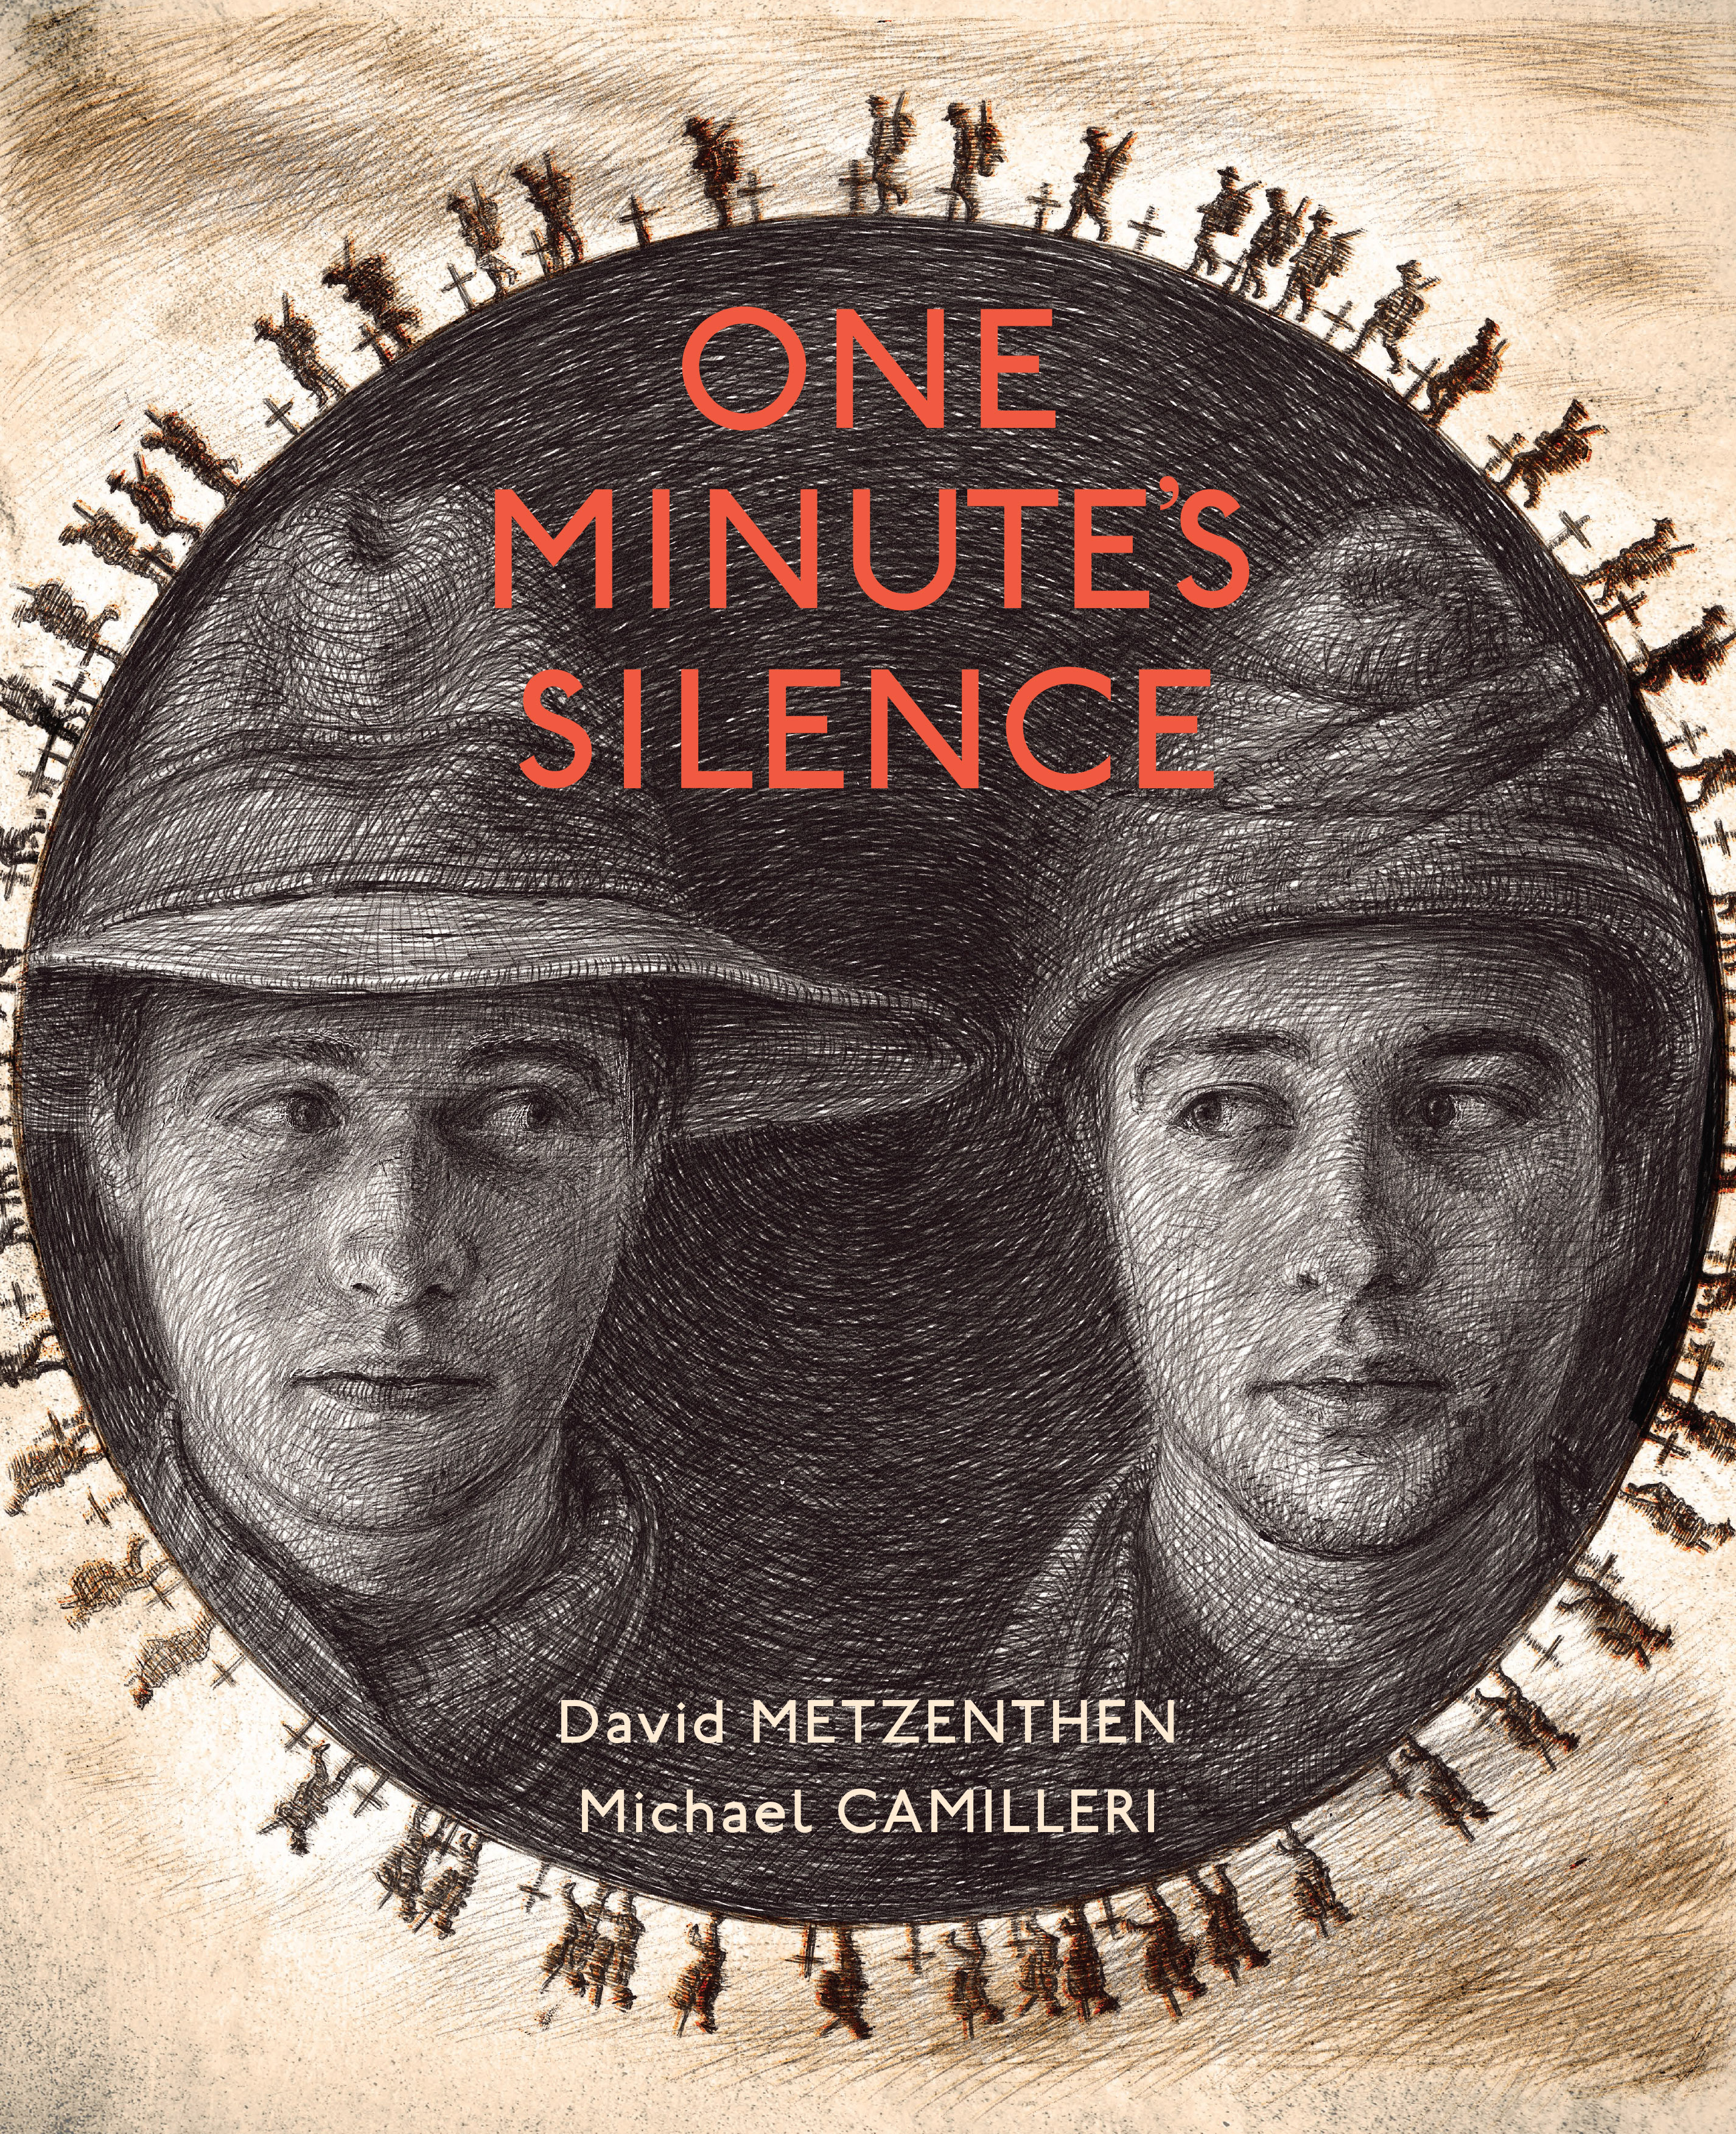 Cover Art for One Minute's Silence, ISBN: 9781743316245